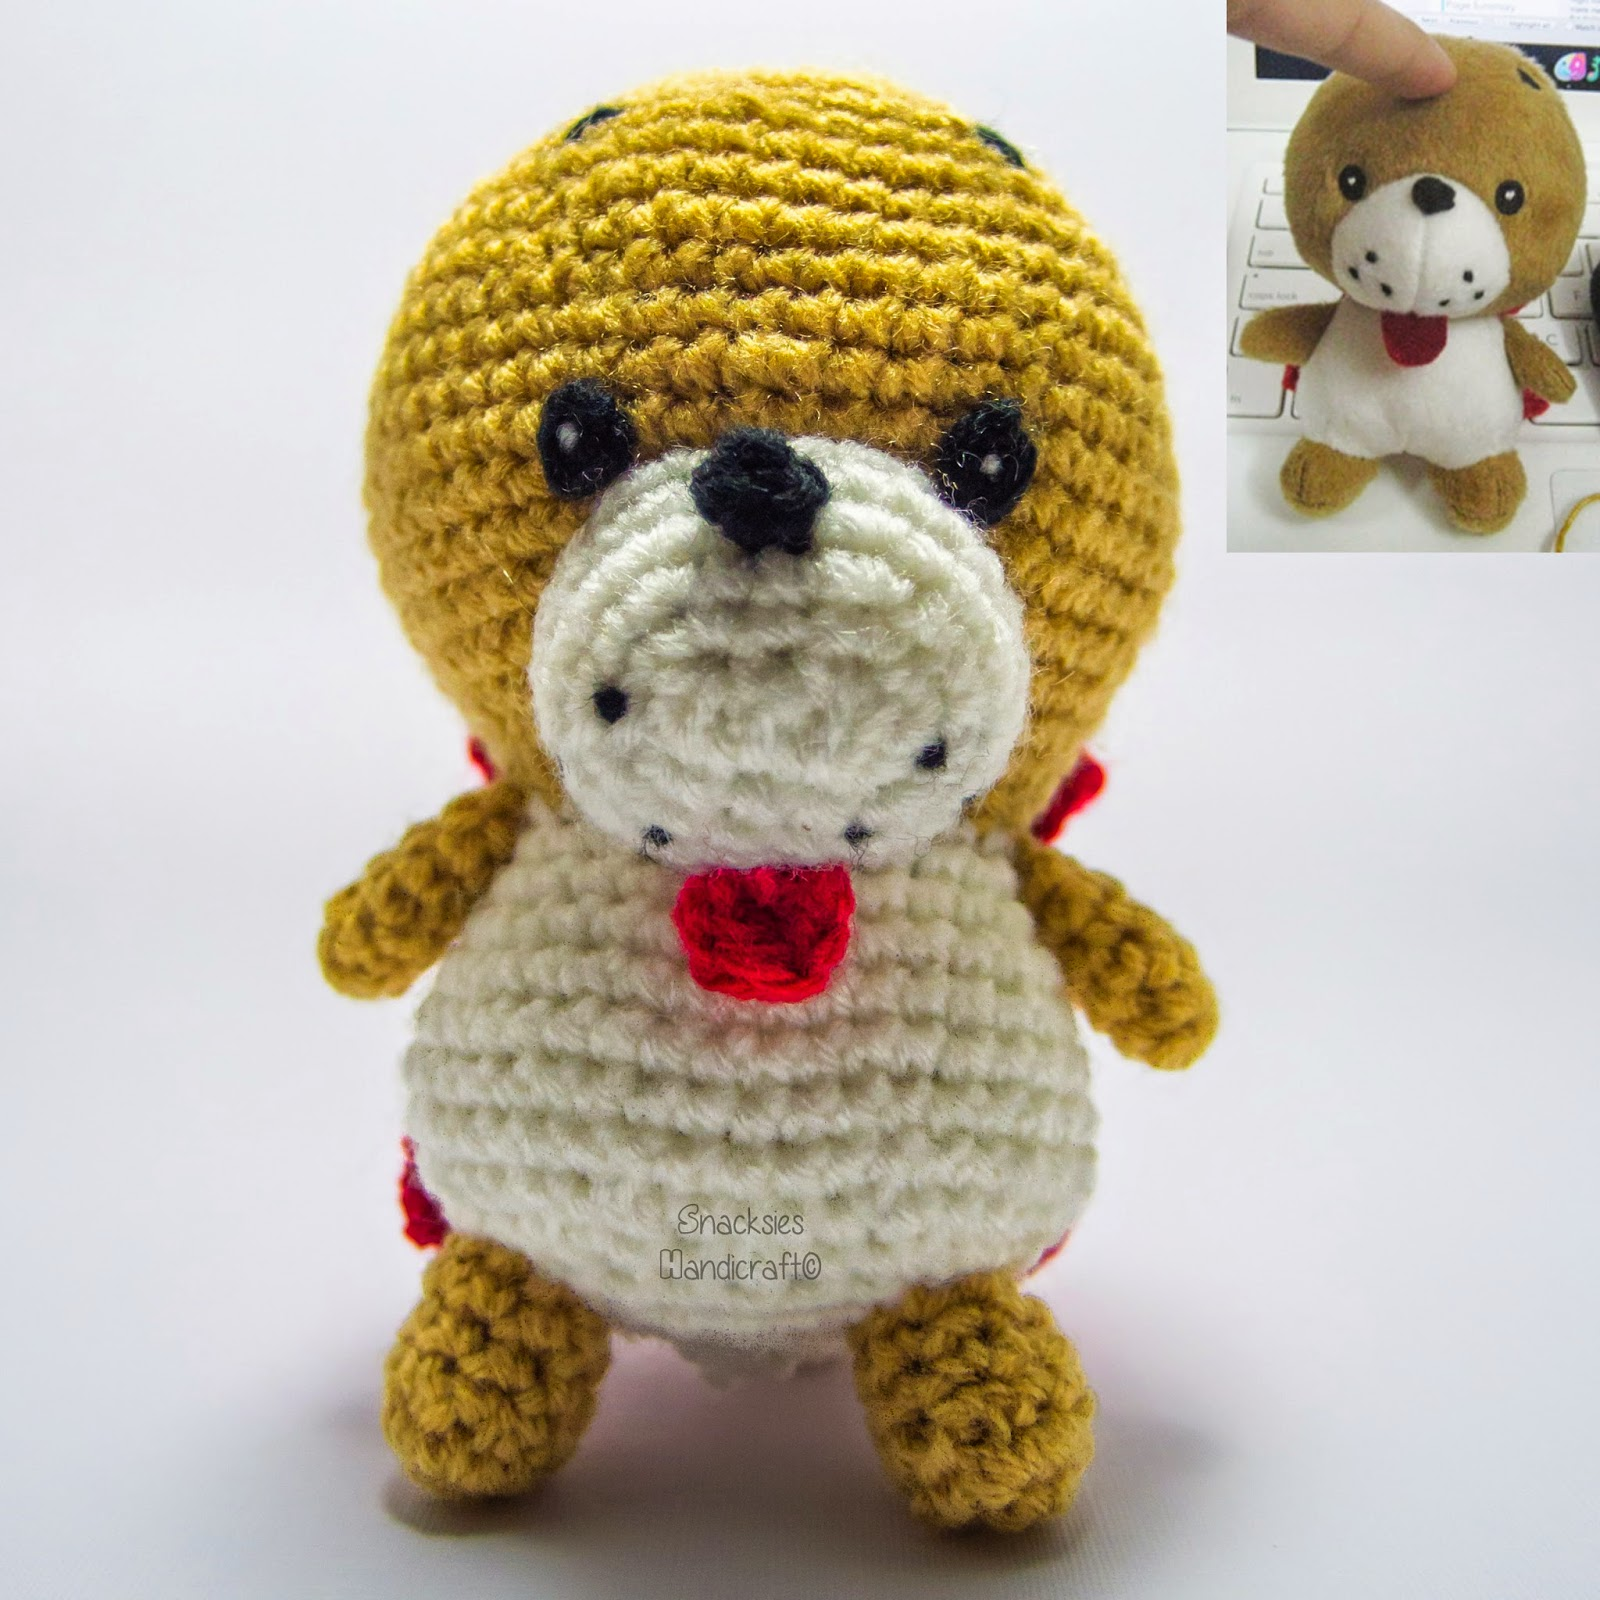 Crocheted Replica of Toy - Kiwatarou (???) Amigurumi ...